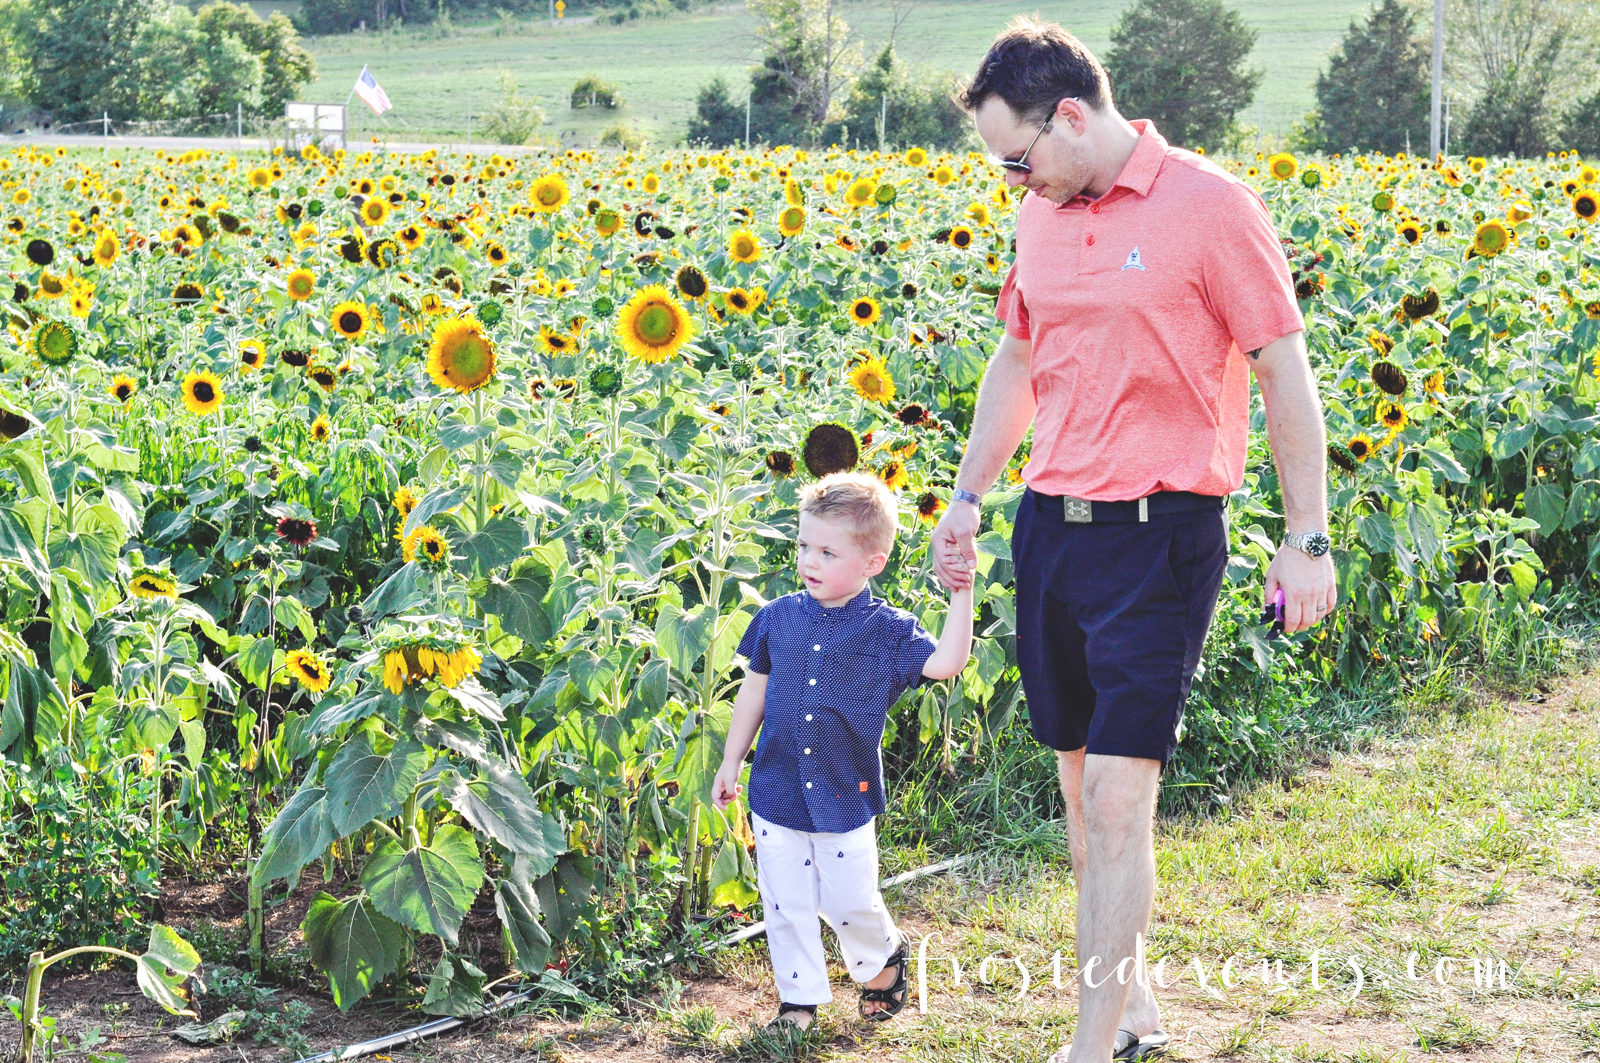 Sunflowers Burnside Farms Virginia Fun for Kids Kid Friendly Places